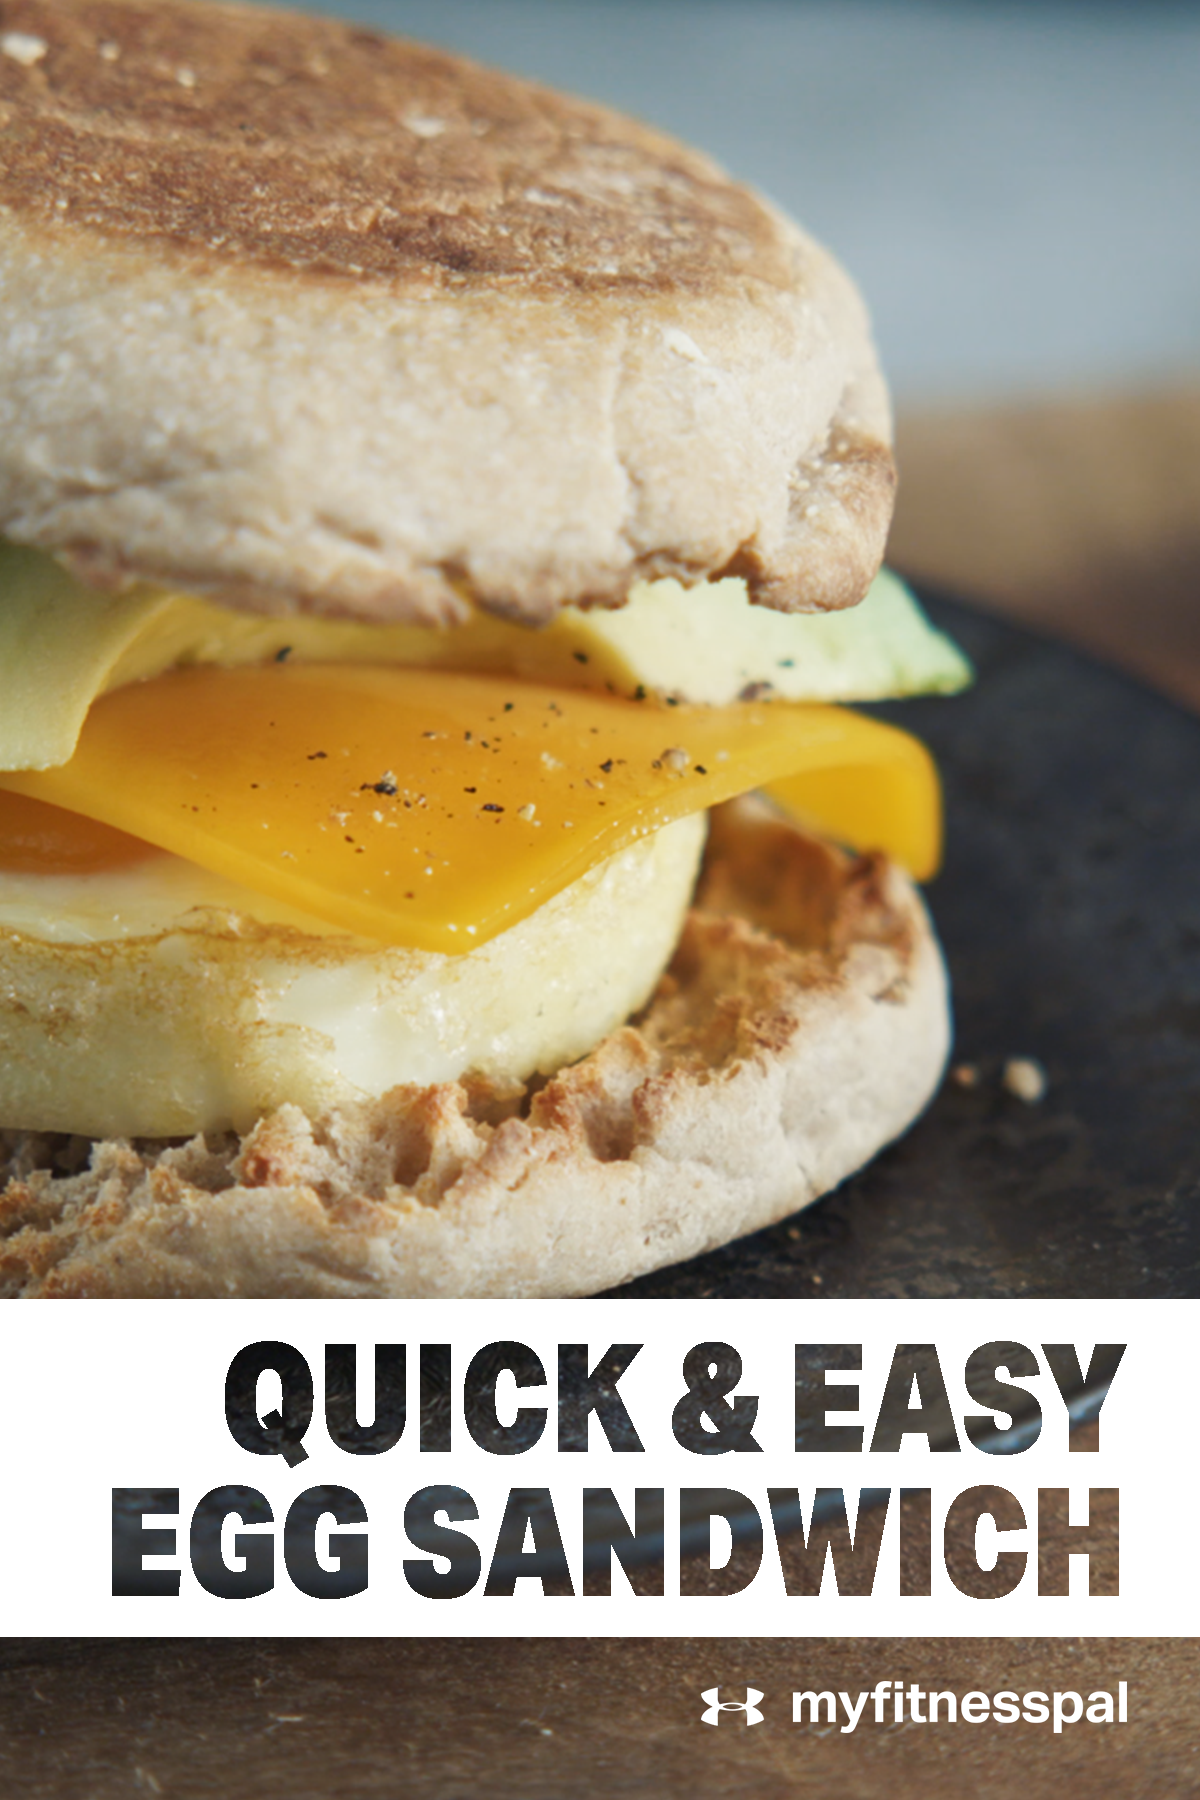 4 Ingredients = The Easiest Egg Sandwich Ever - Quick. Simple. Delicious. Need we say more? Check out the recipe on myfitnesspal.